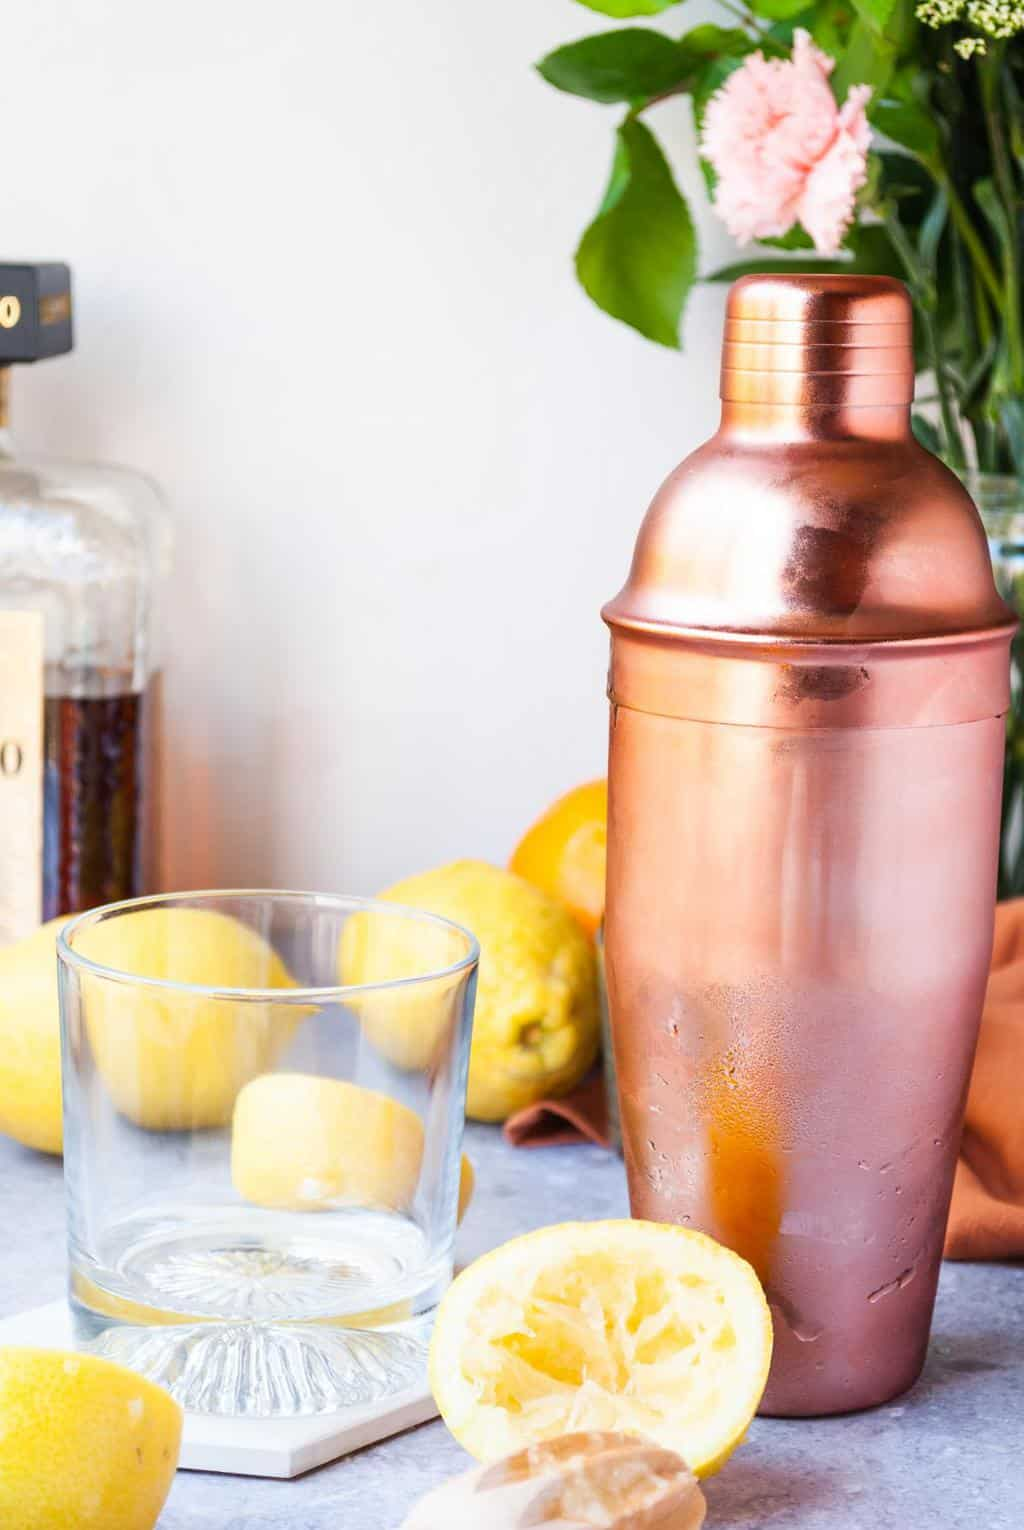 Recipes for Amaretto Sour - a photo of tools used to make the Amaretto Sour.